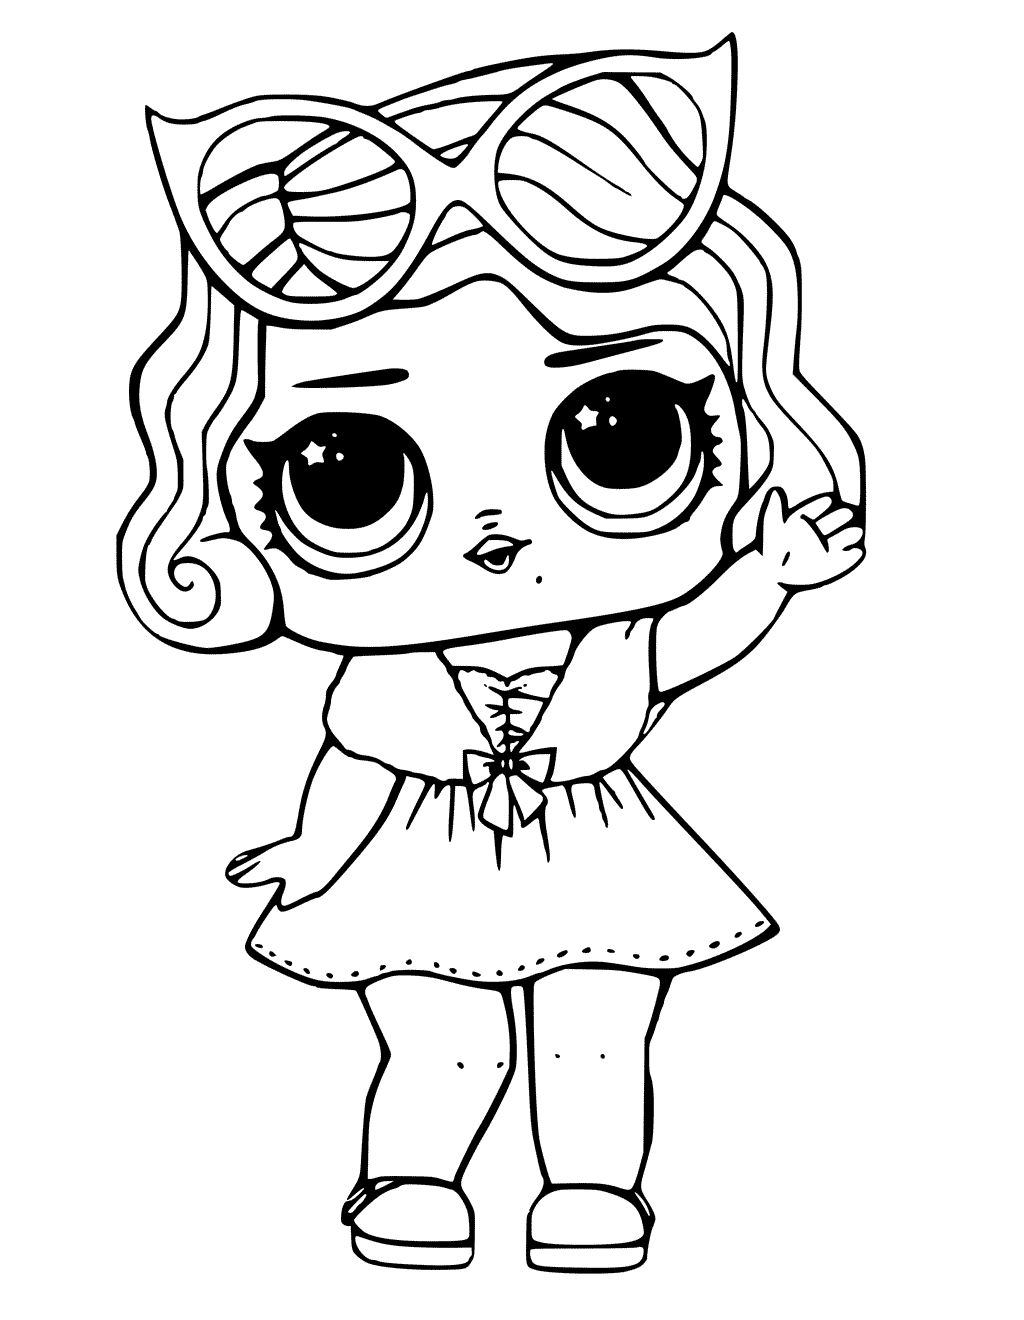 Lol Free Coloring Sheets Lol Doll Free Coloring Pages Lol Doll Free Coloring Sheets Lol Free Baby Coloring Pages Unicorn Coloring Pages Cute Coloring Pages